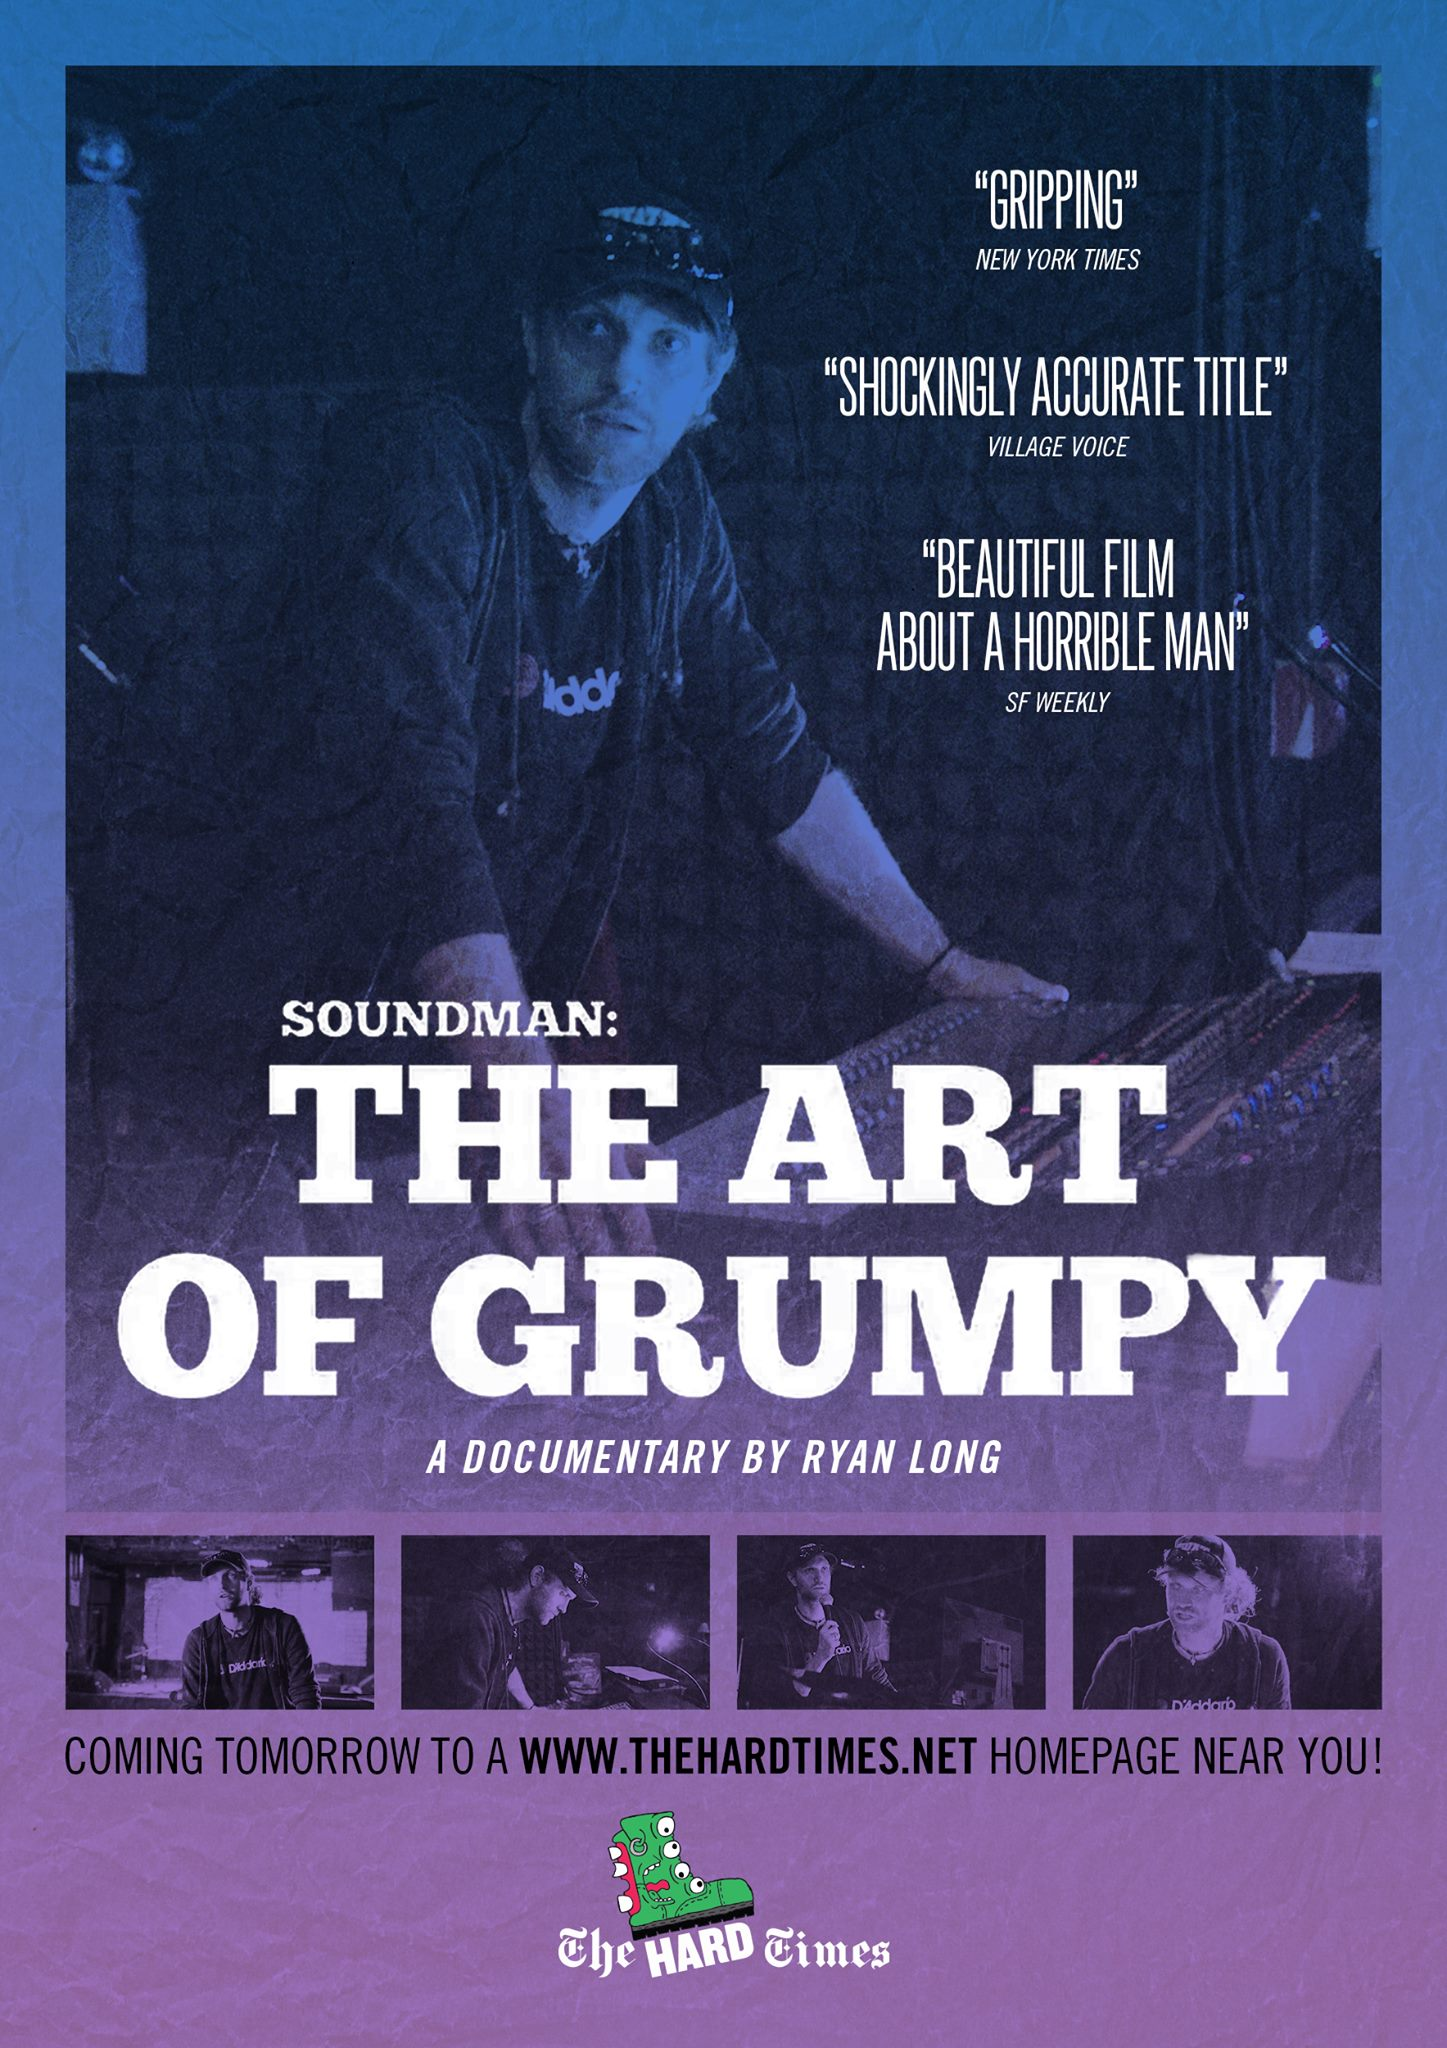 14481995 10153891488573483 2583350133182281026 o Grumpy sound guy has the last laugh in new documentary from The Hard Times    watch